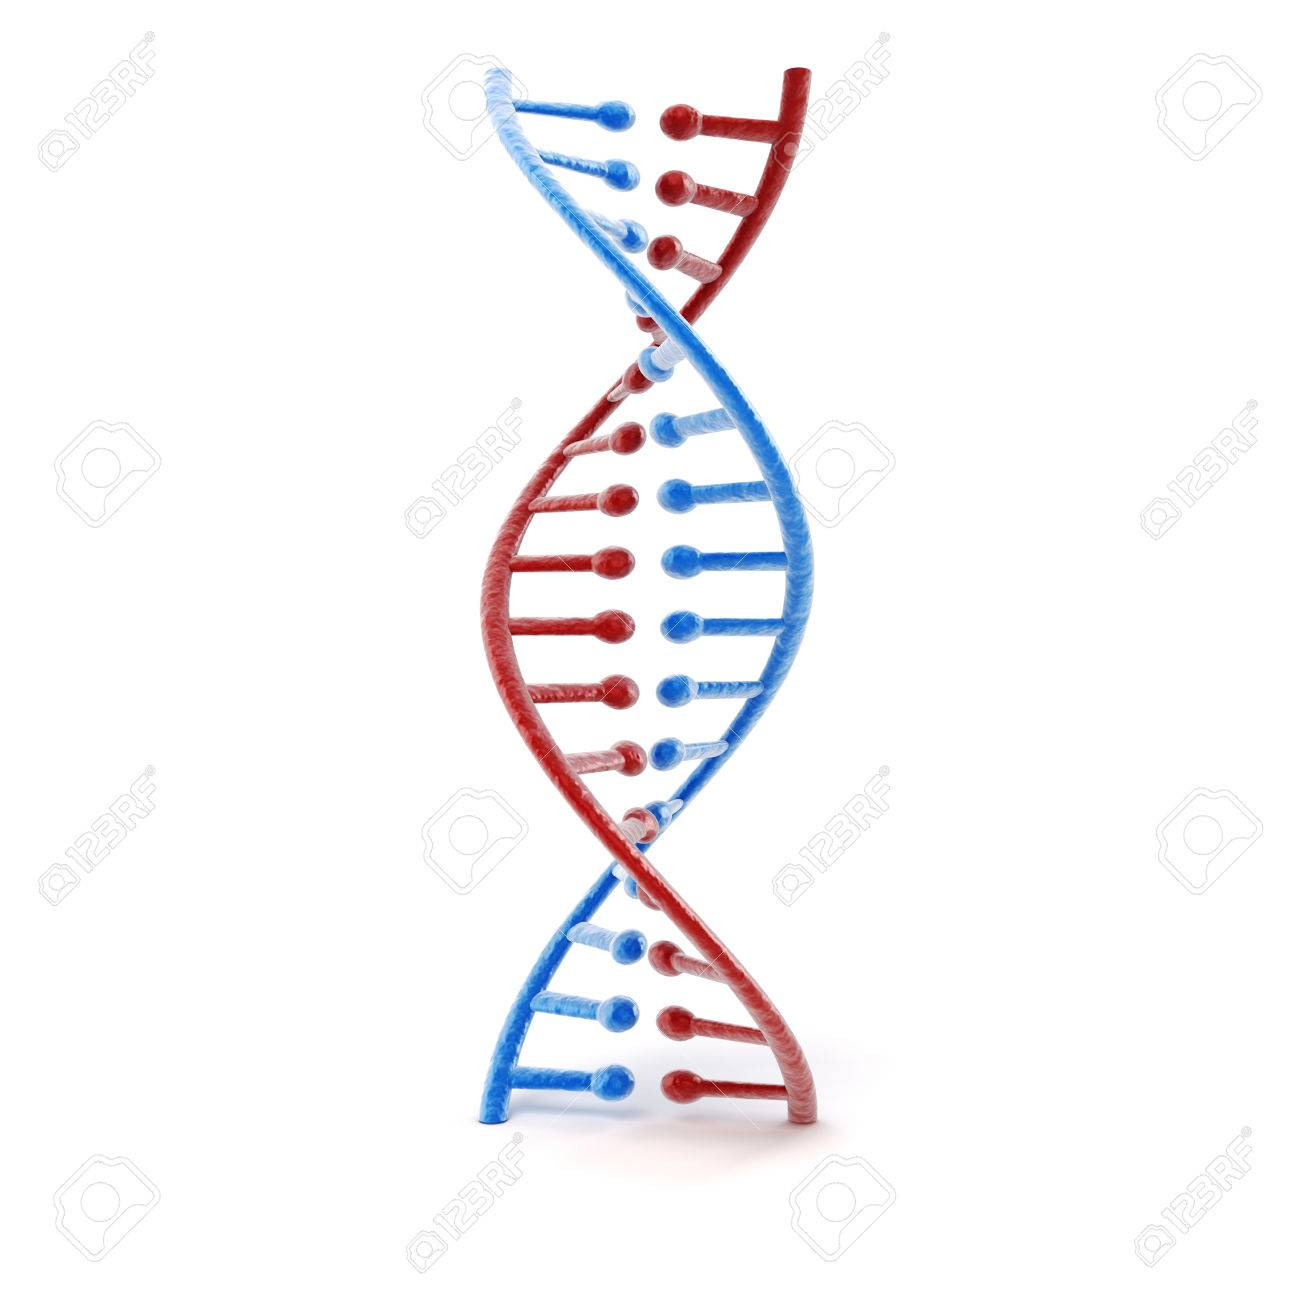 3d render of dna structure abstract background stock photo picture 3d render of dna structure abstract background stock photo 28063513 ccuart Image collections